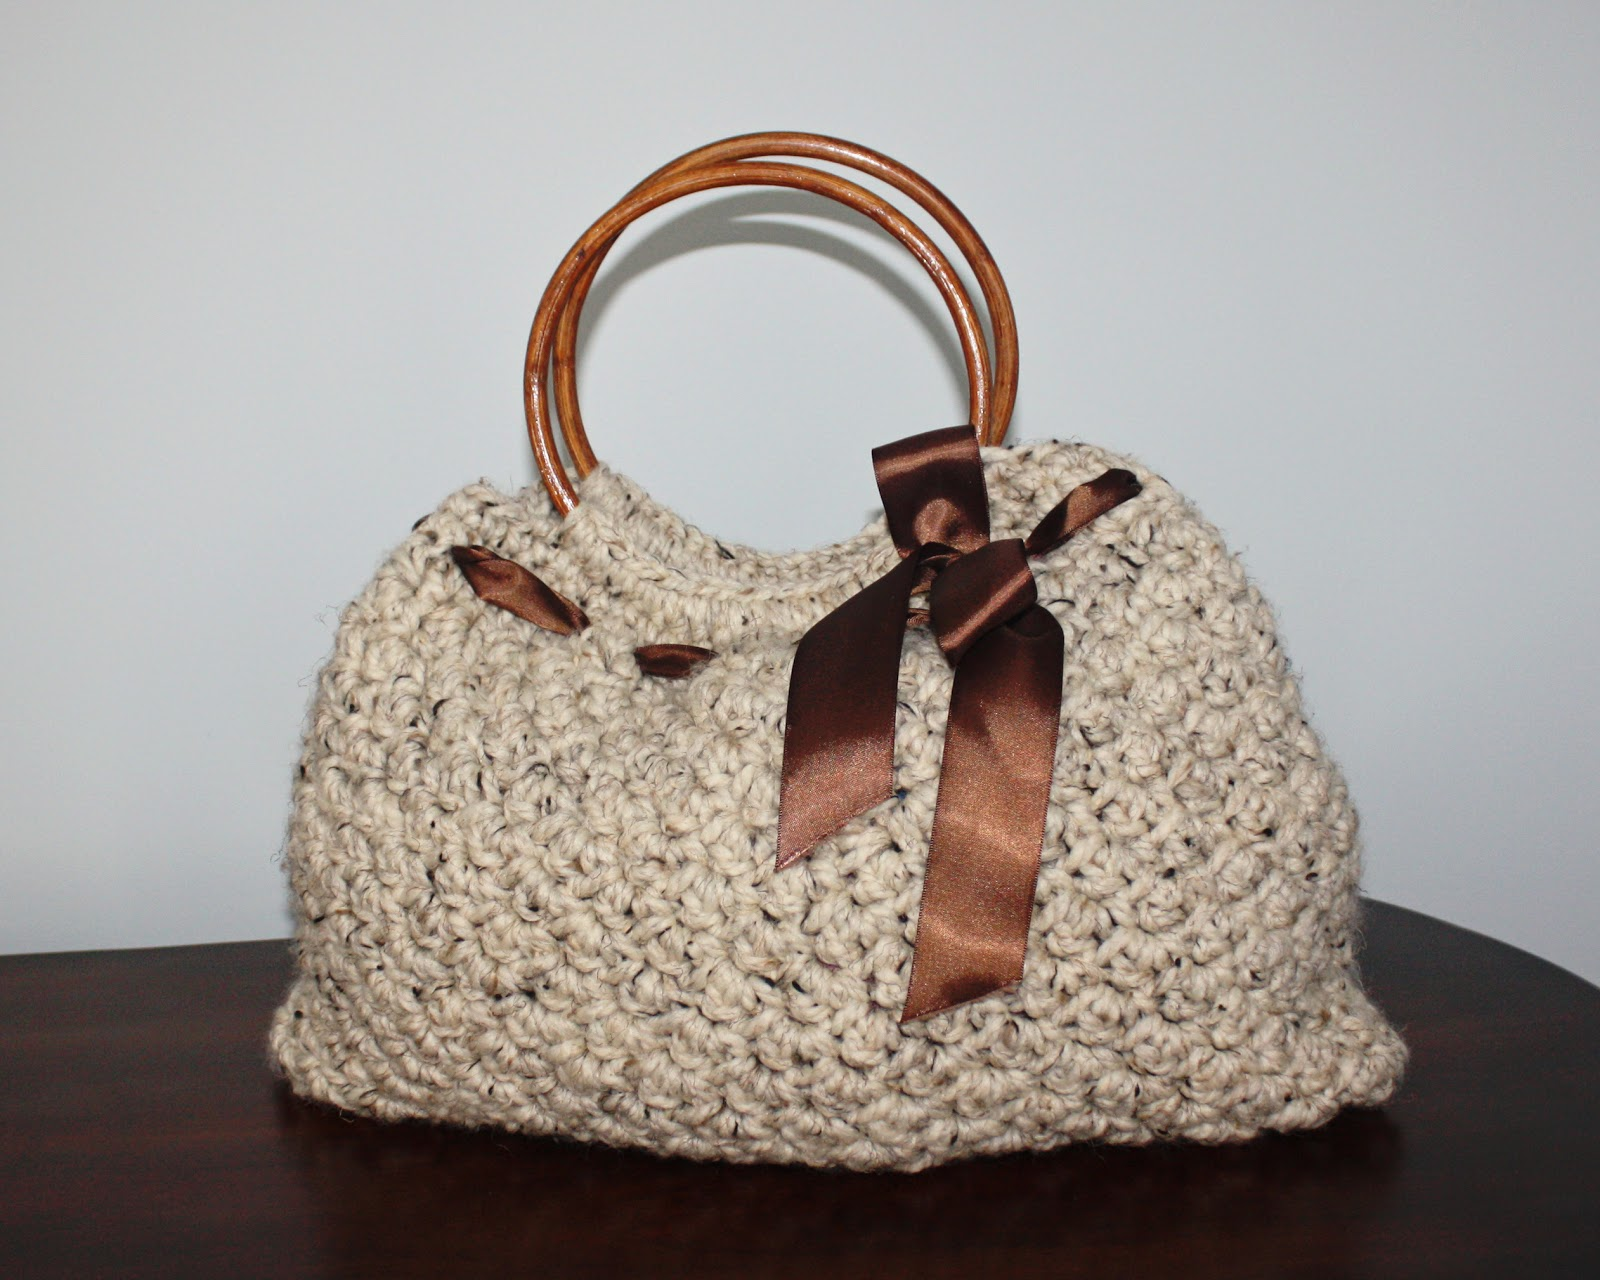 Crochet Purse Ideas : Pretty Darn Adorable Crochet: Crochet Handbag/Purse